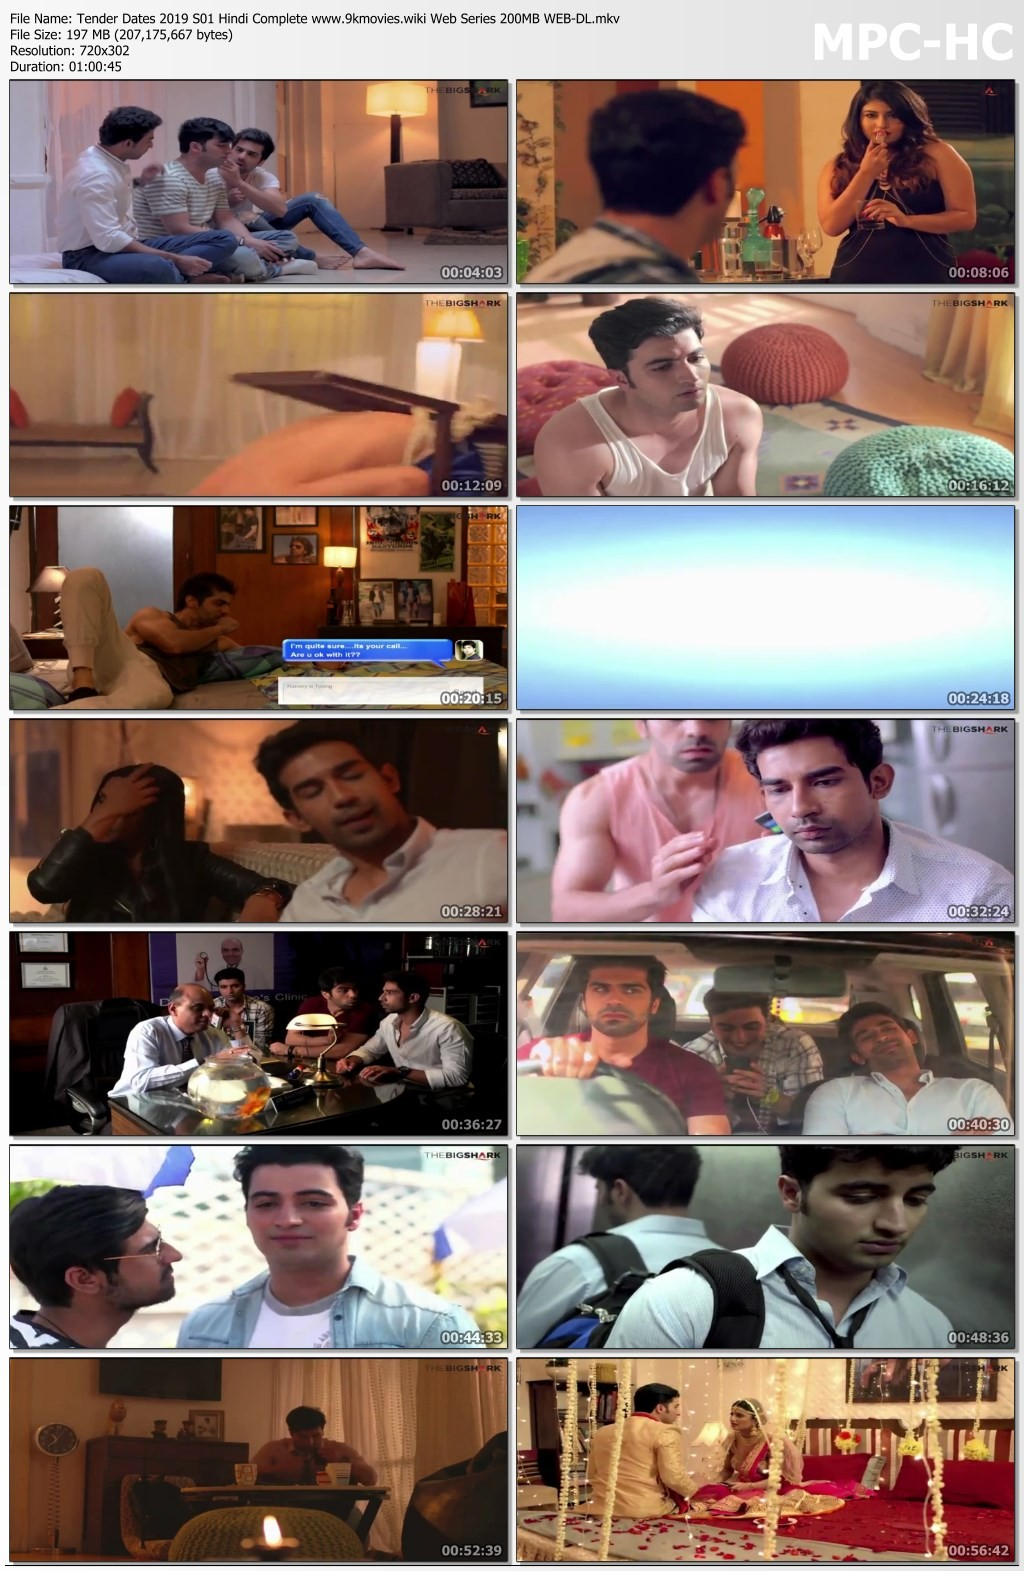 18+ Tender Dates 2019 S01 Hindi Full Complete Web Series 200MB WEB-DL Download